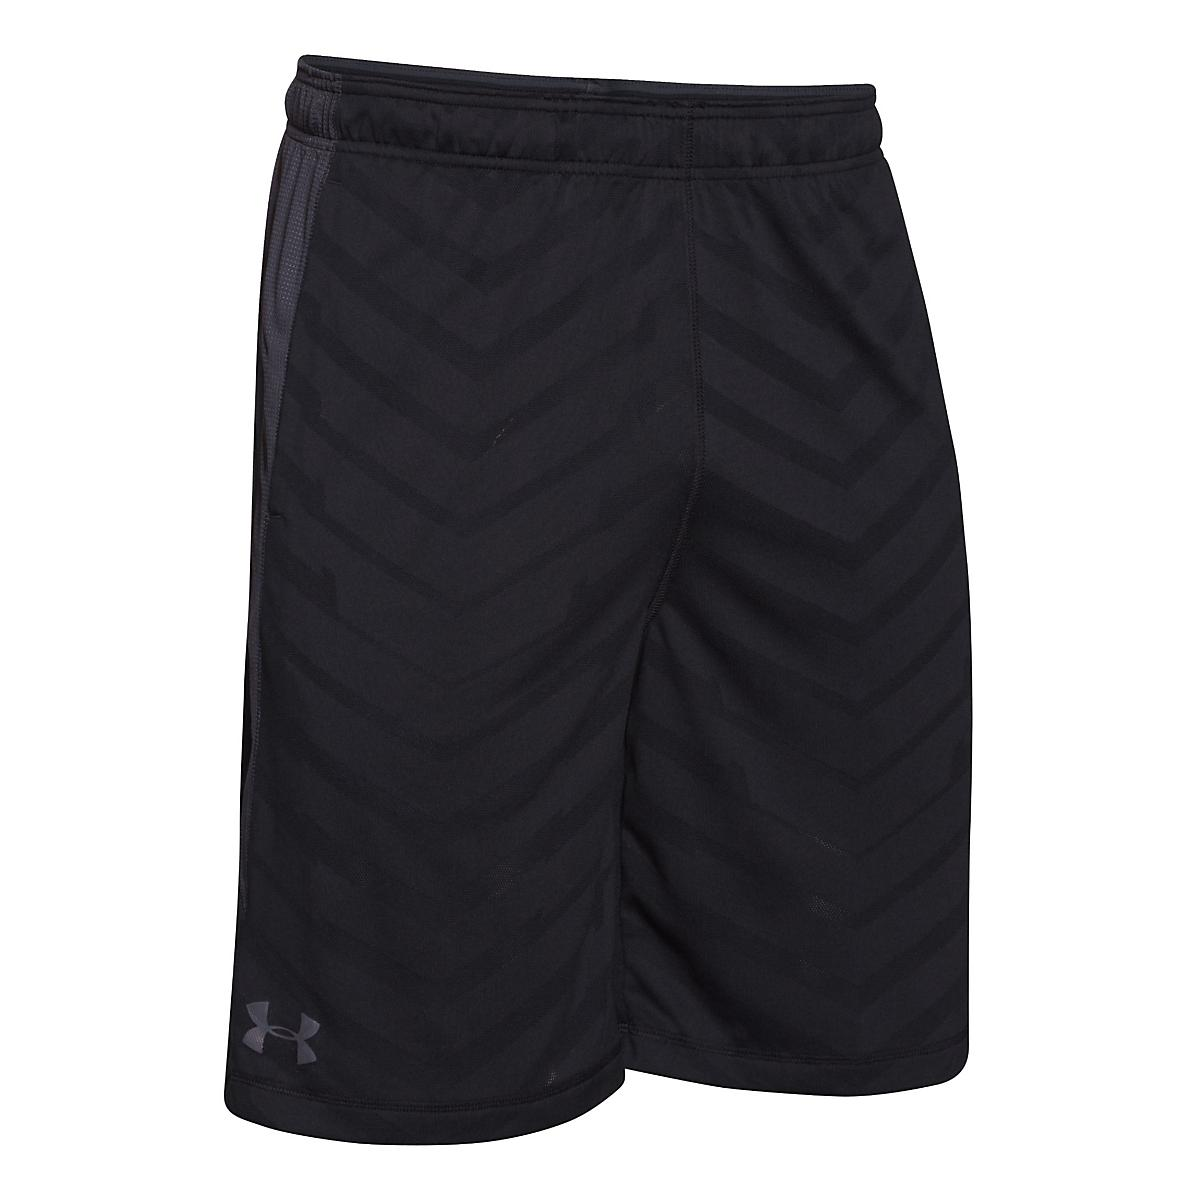 6f4f03141cf6 Mens Under Armour EXO Raid Unlined Shorts at Road Runner Sports